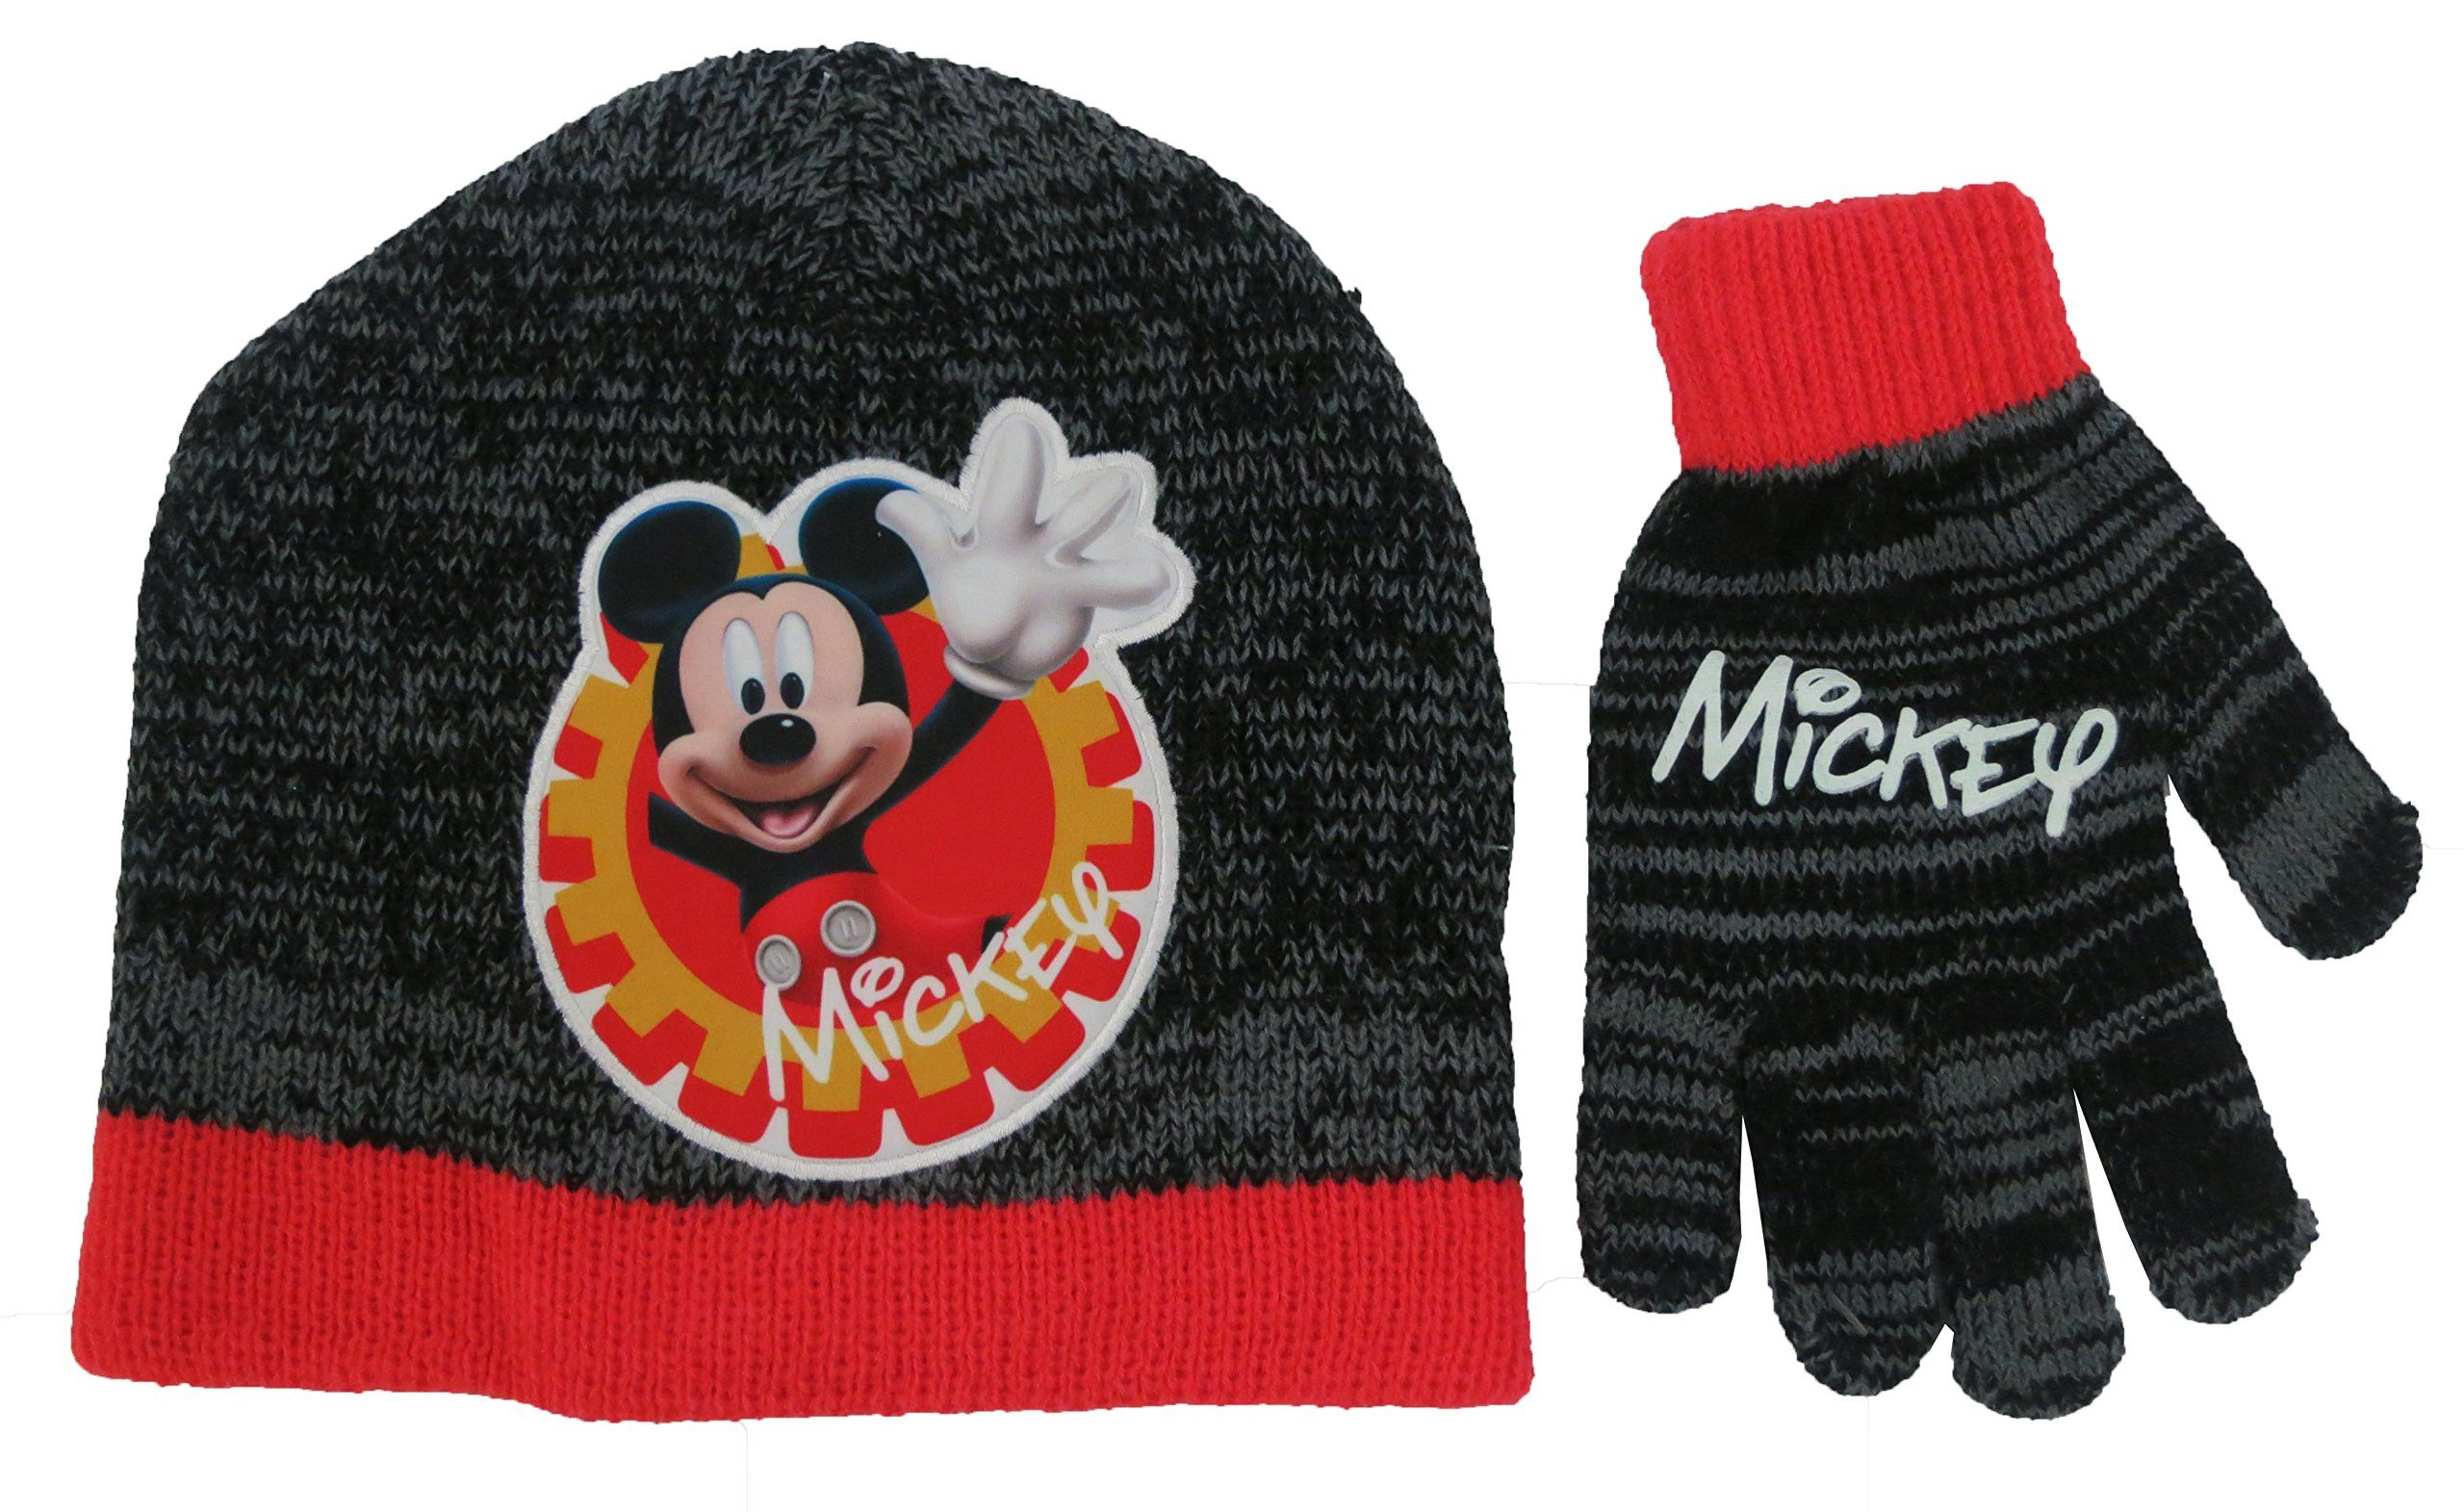 Disney Mickey Mouse Clubhouse Boys Beanie Hat and Glove Set- Size Boys 4-14   4013 . Hat Featuring  Mickey Face Smiling and Hands Waving. Grey and Black  ... 2424de849583